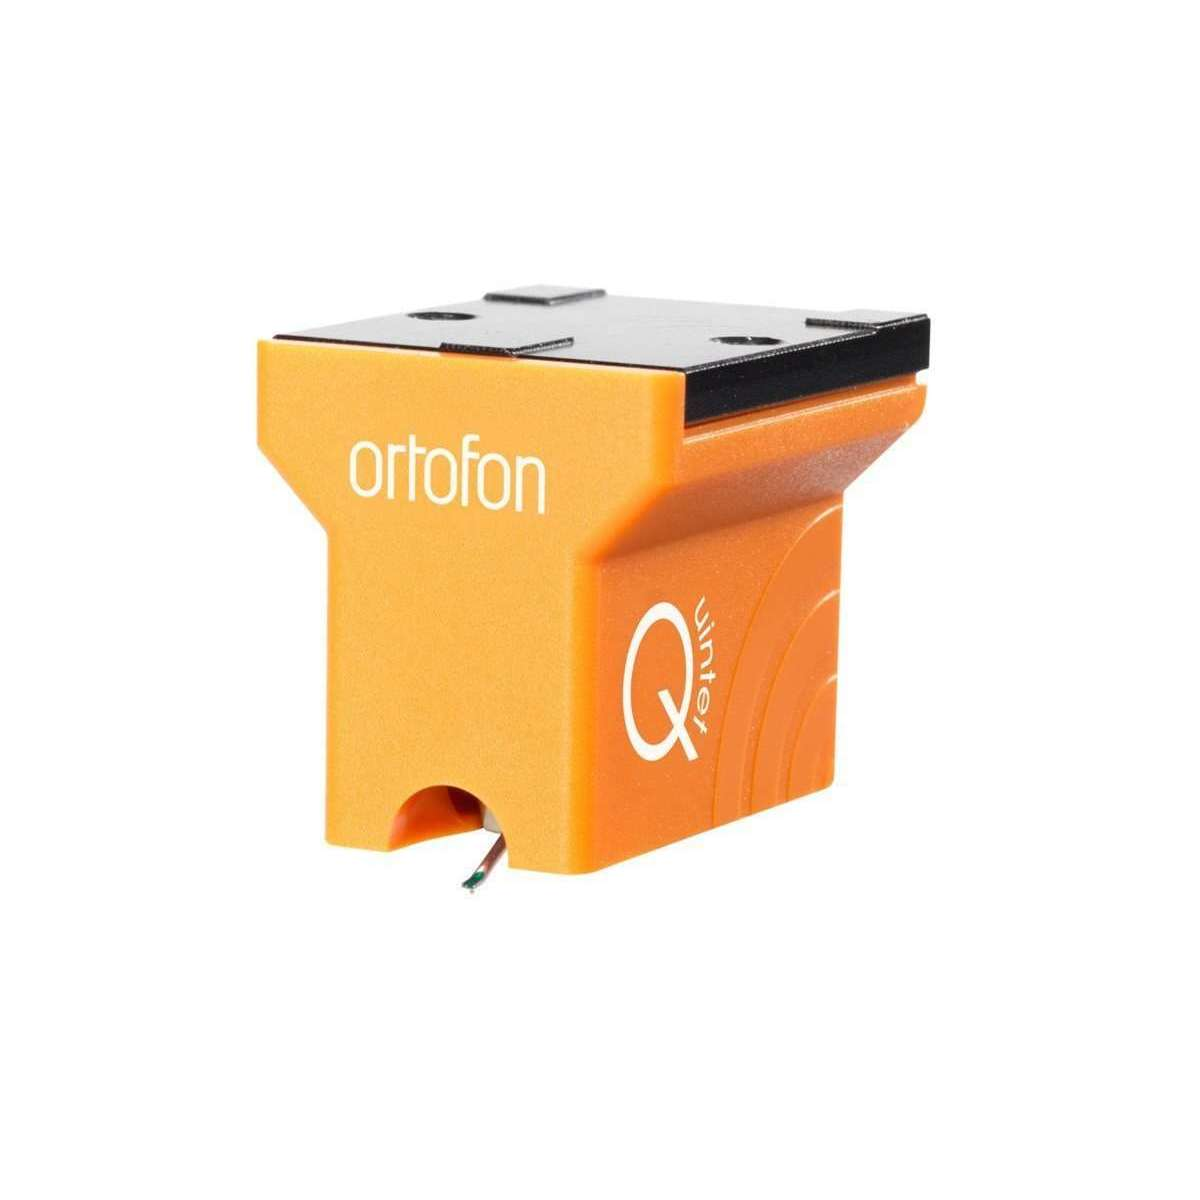 Ortofon Quintet Bronze Moving Coil Cartridge - Default Title - Call SpatialOnline 0345 557 7334